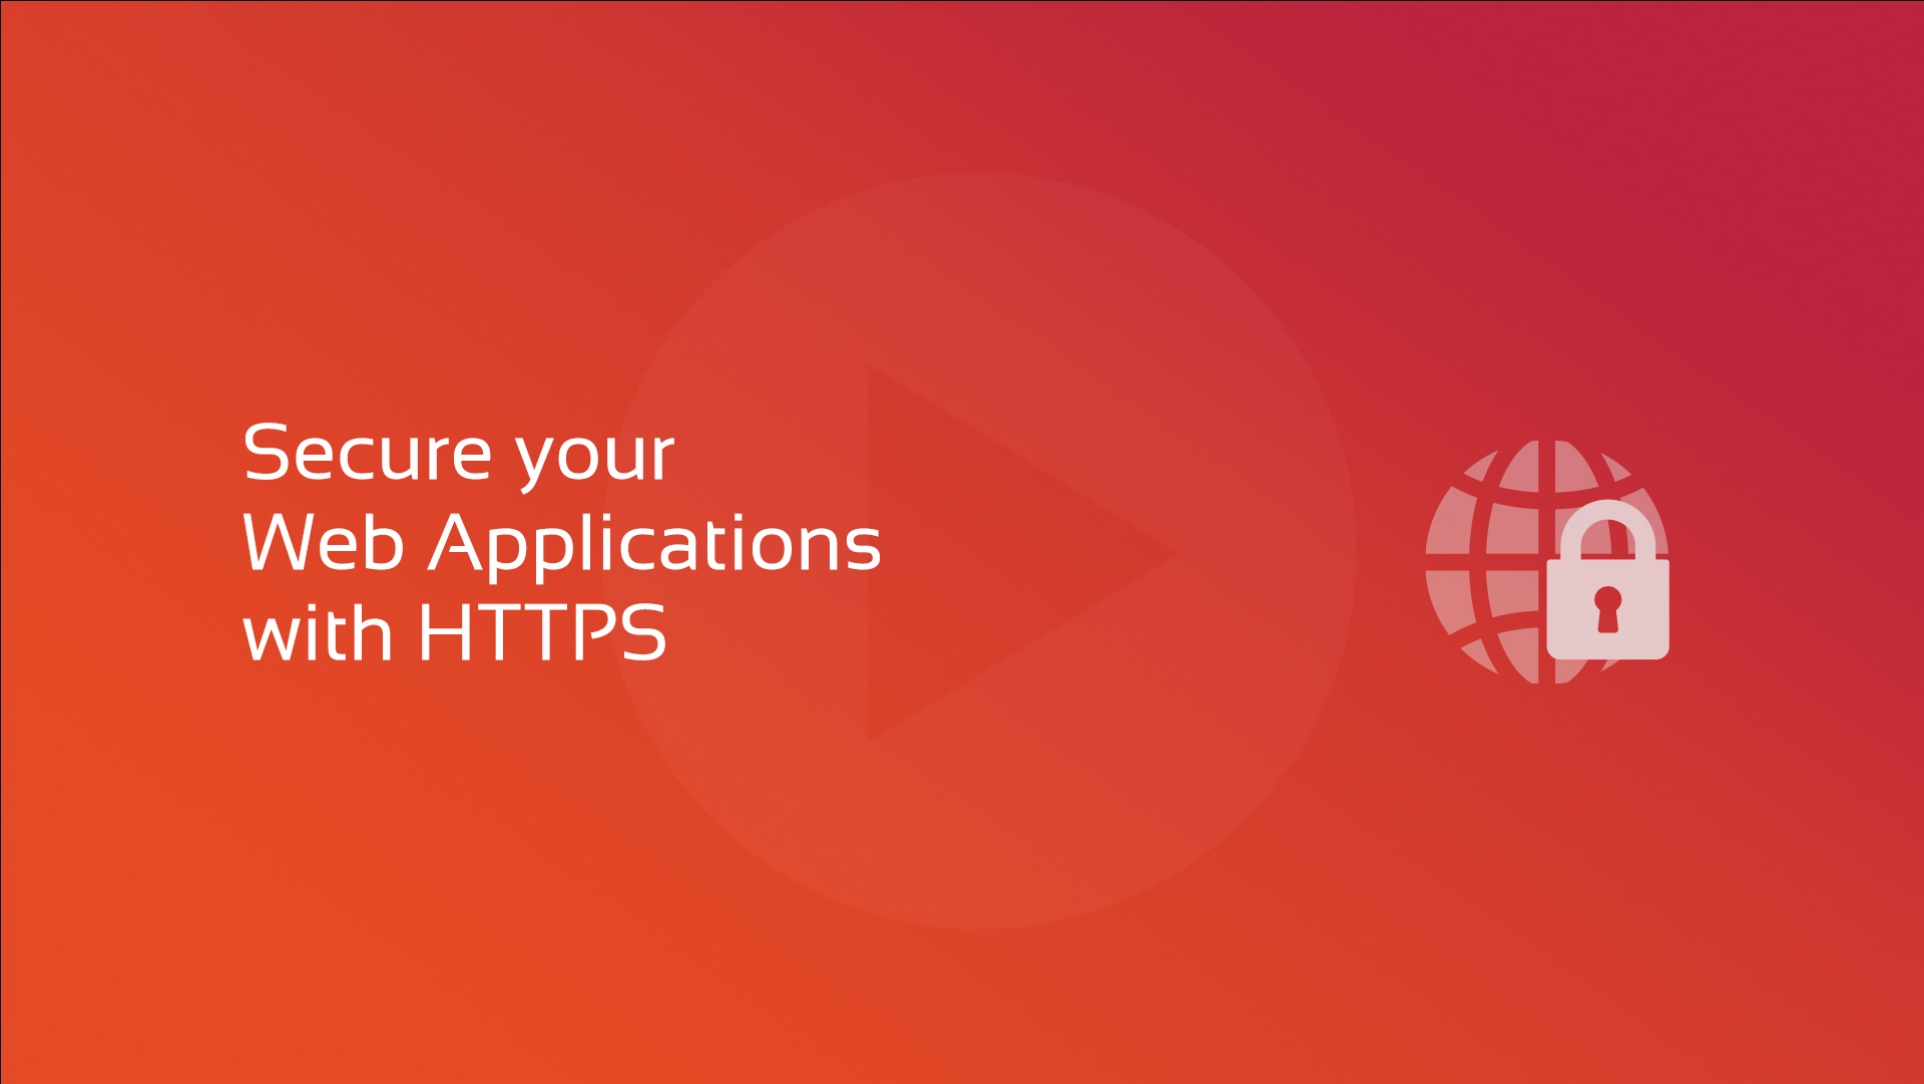 Secure your web applications with HTTPS